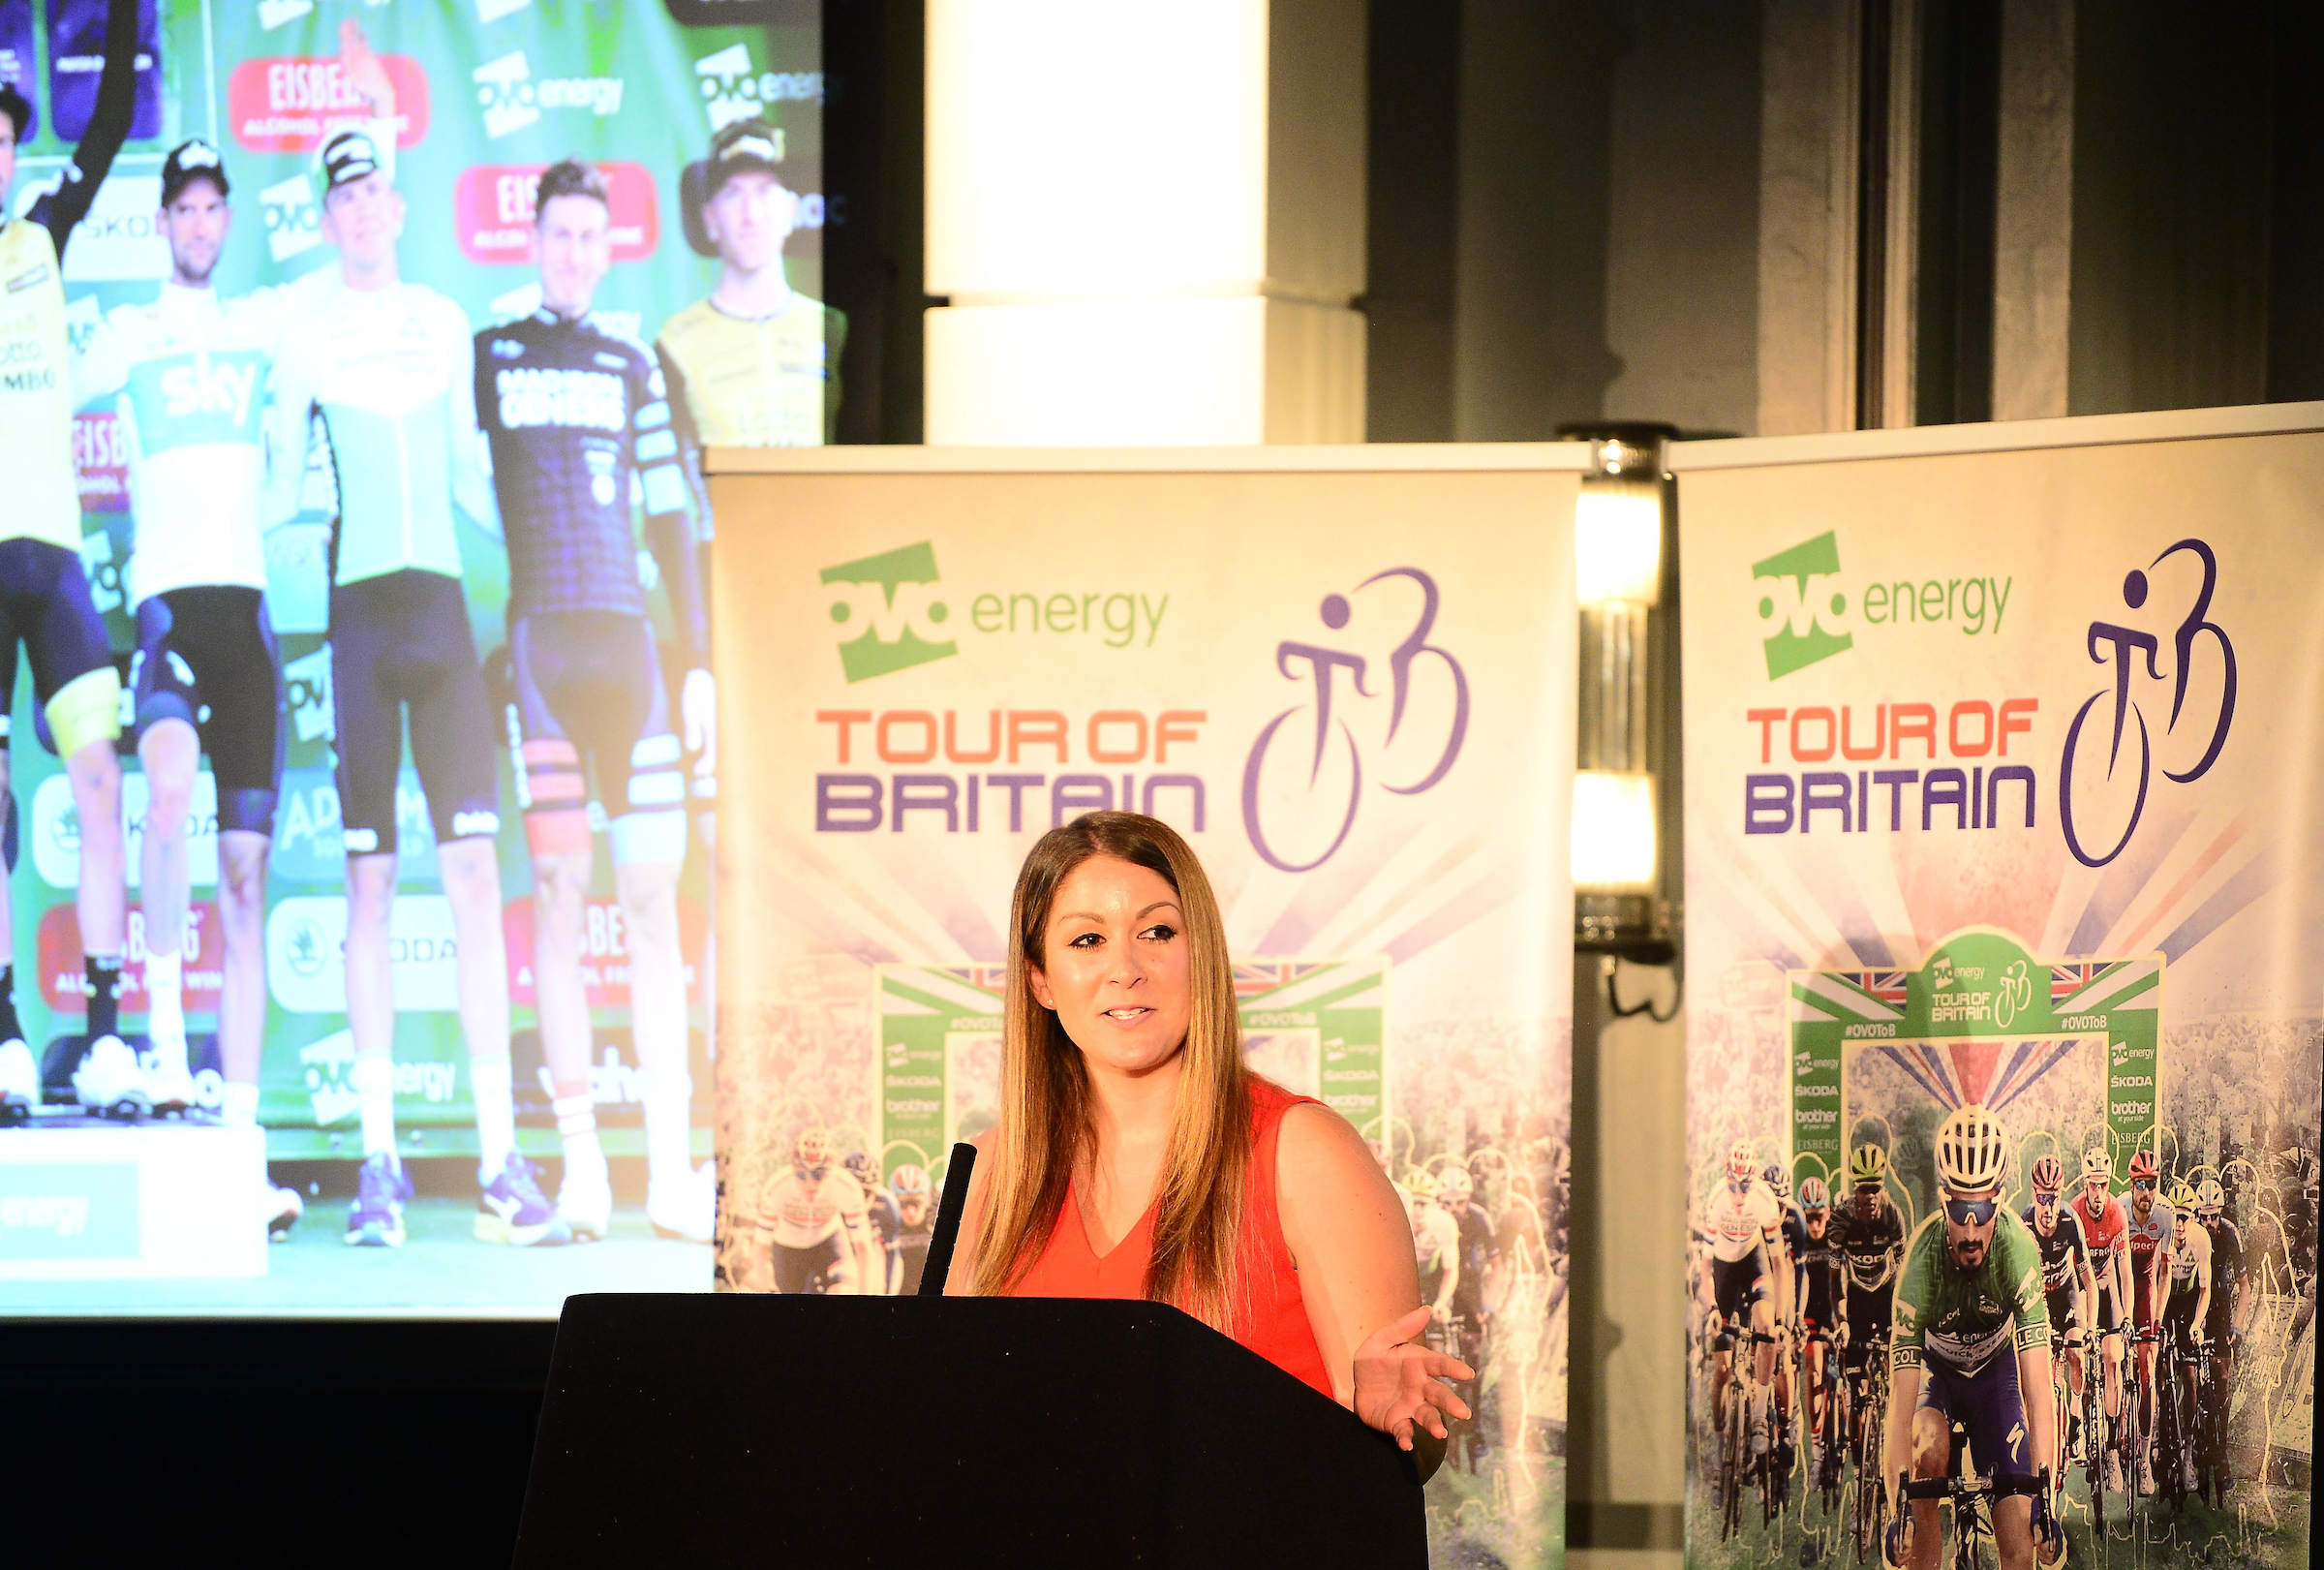 Tour of Britain - The 2019 route is unveiled